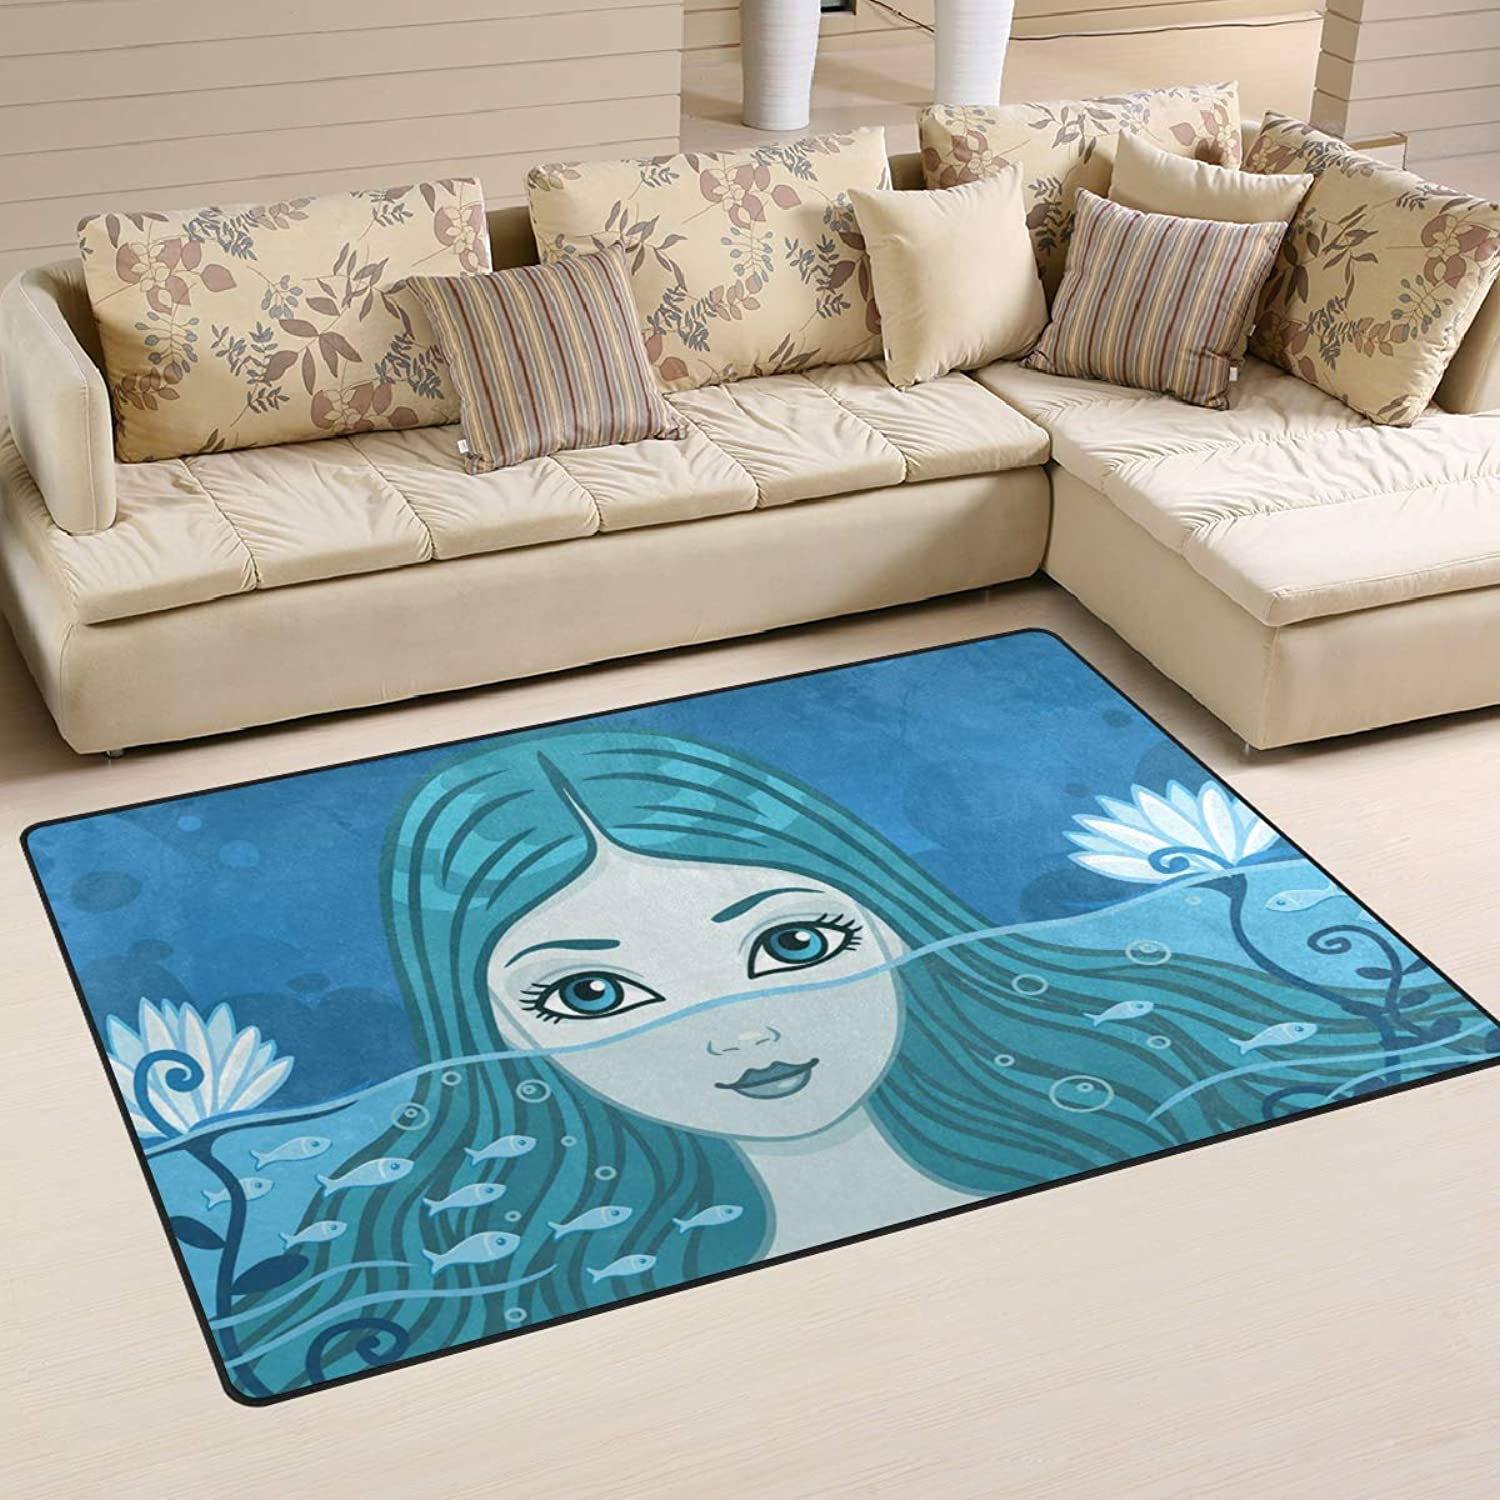 Area Rugs Doormats Beautiful Cute Mermaid 5'x3'3 (60x39 Inches) Non-Slip Floor Mat Soft Carpet for Living Dining Bedroom Home